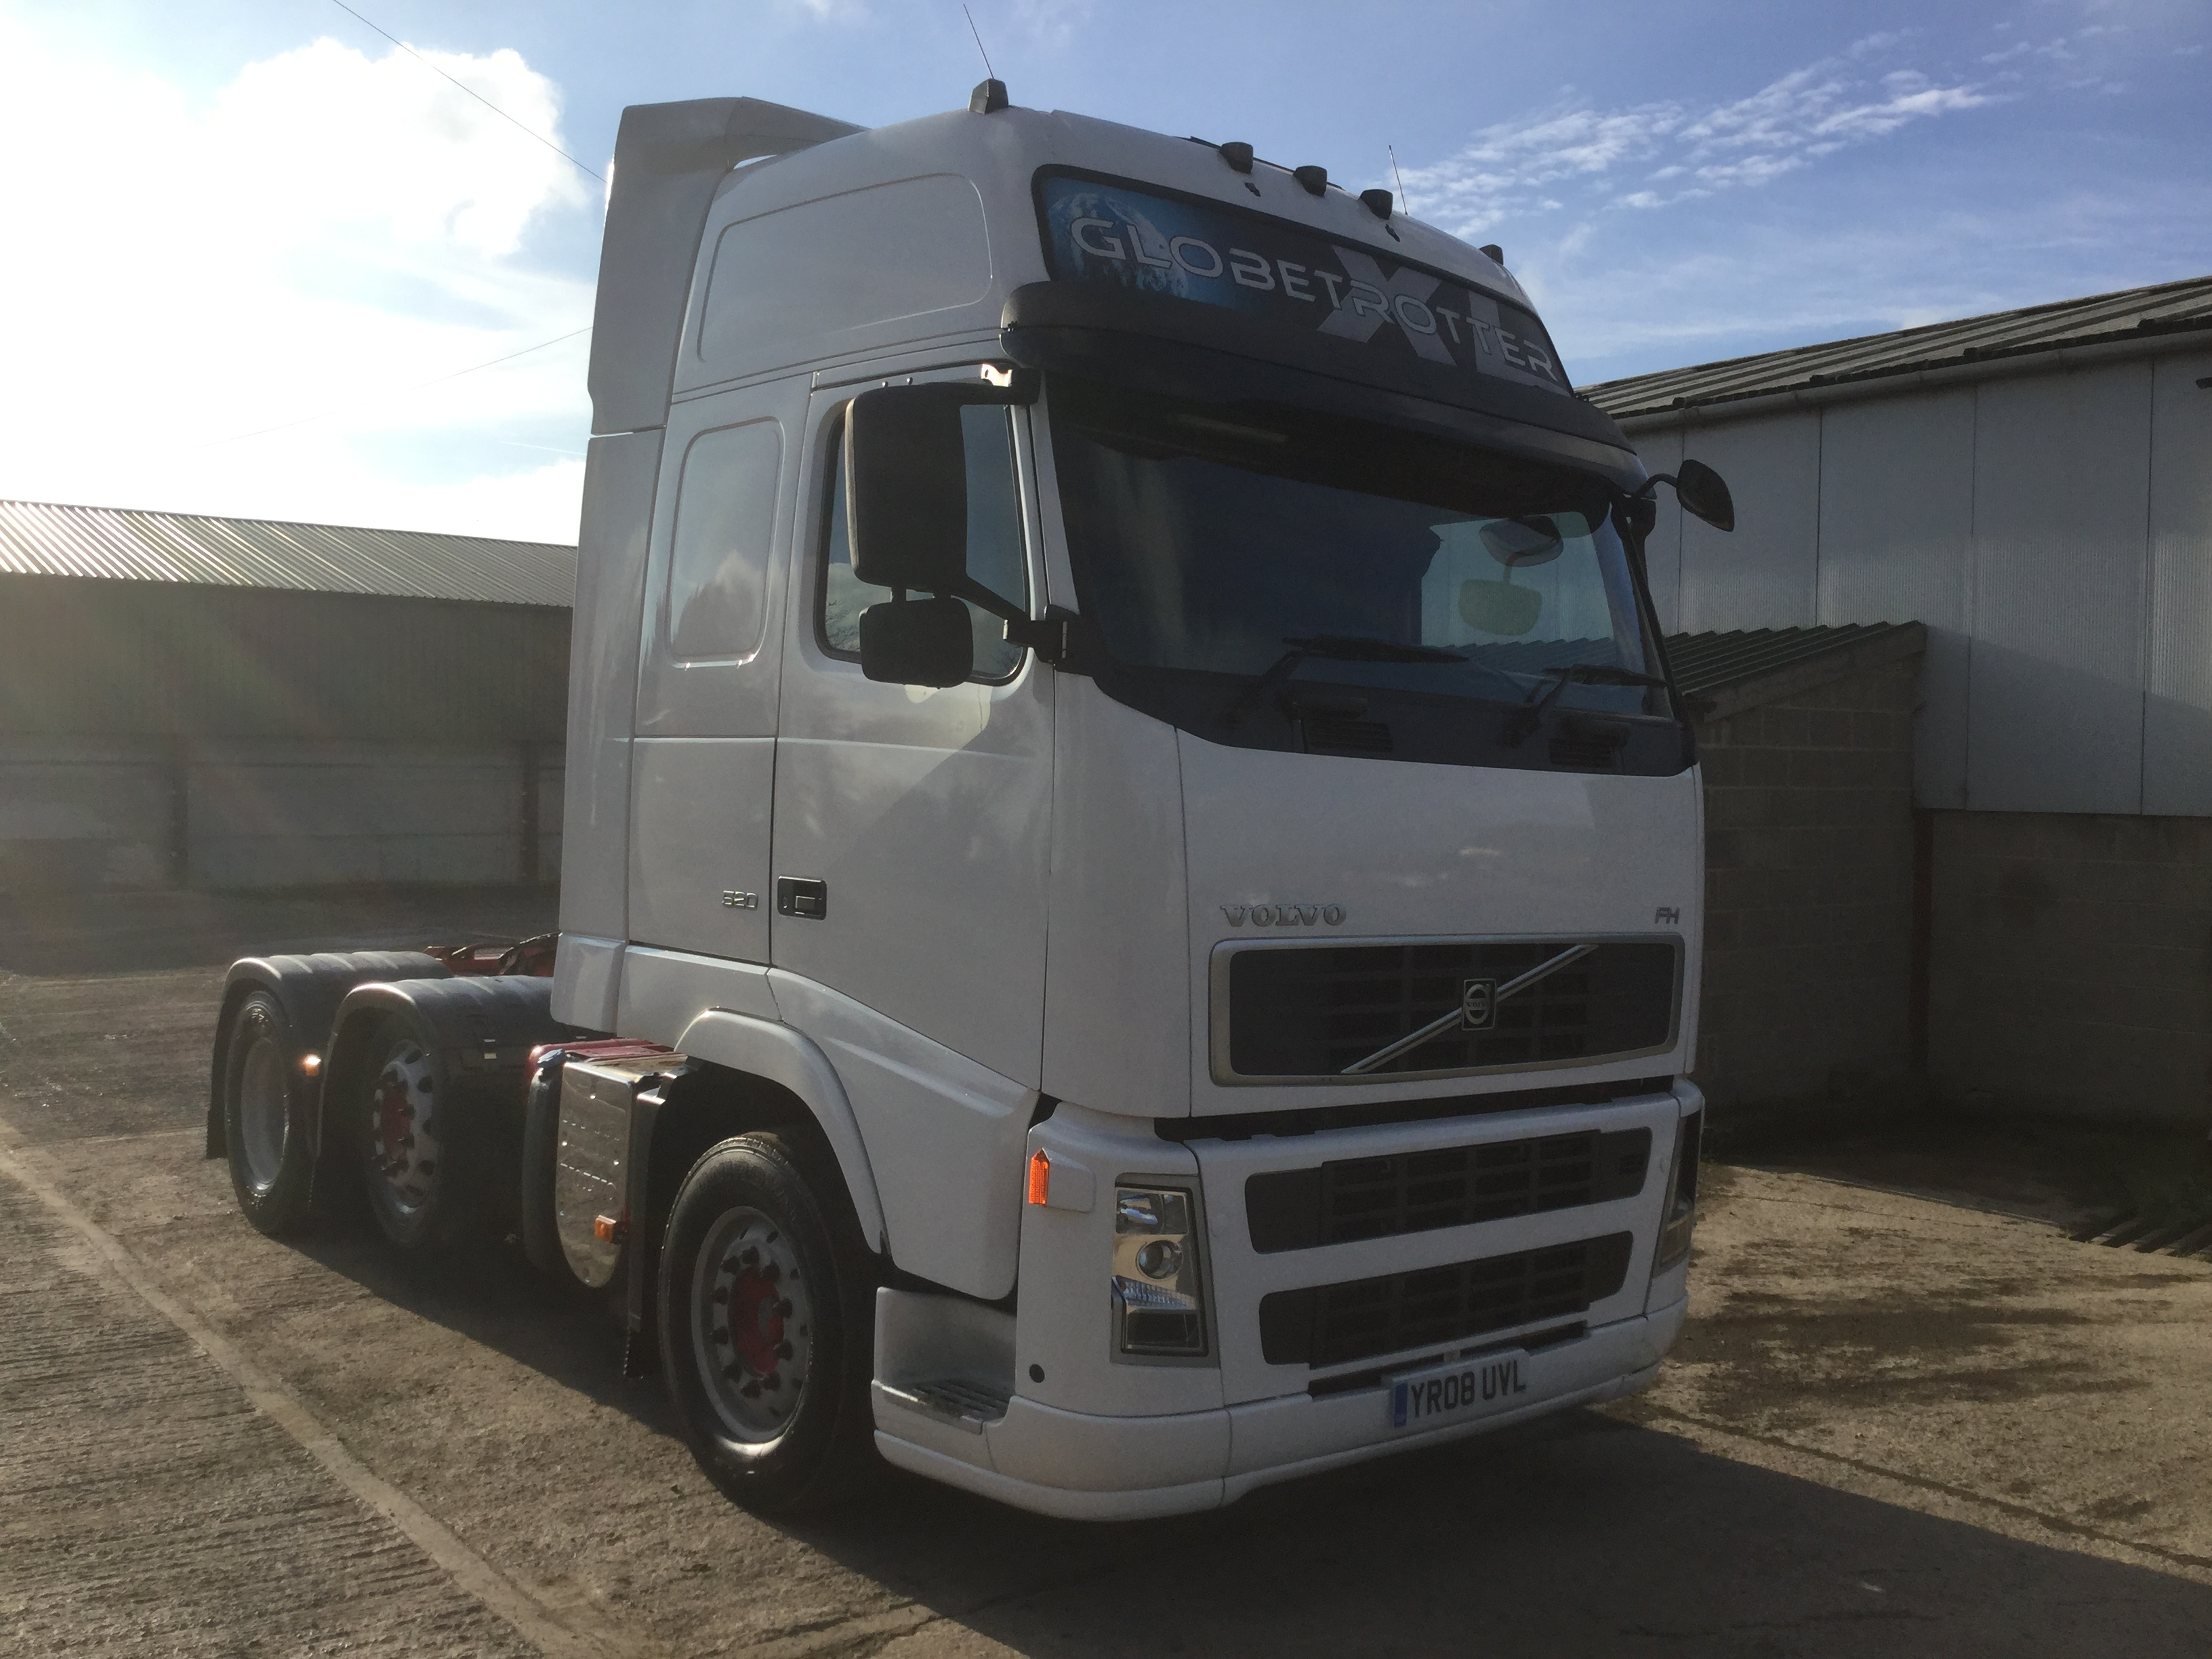 2018 volvo fh. beautiful volvo 2008 volvo fh13 520 globetrotter xl for 2018 volvo fh